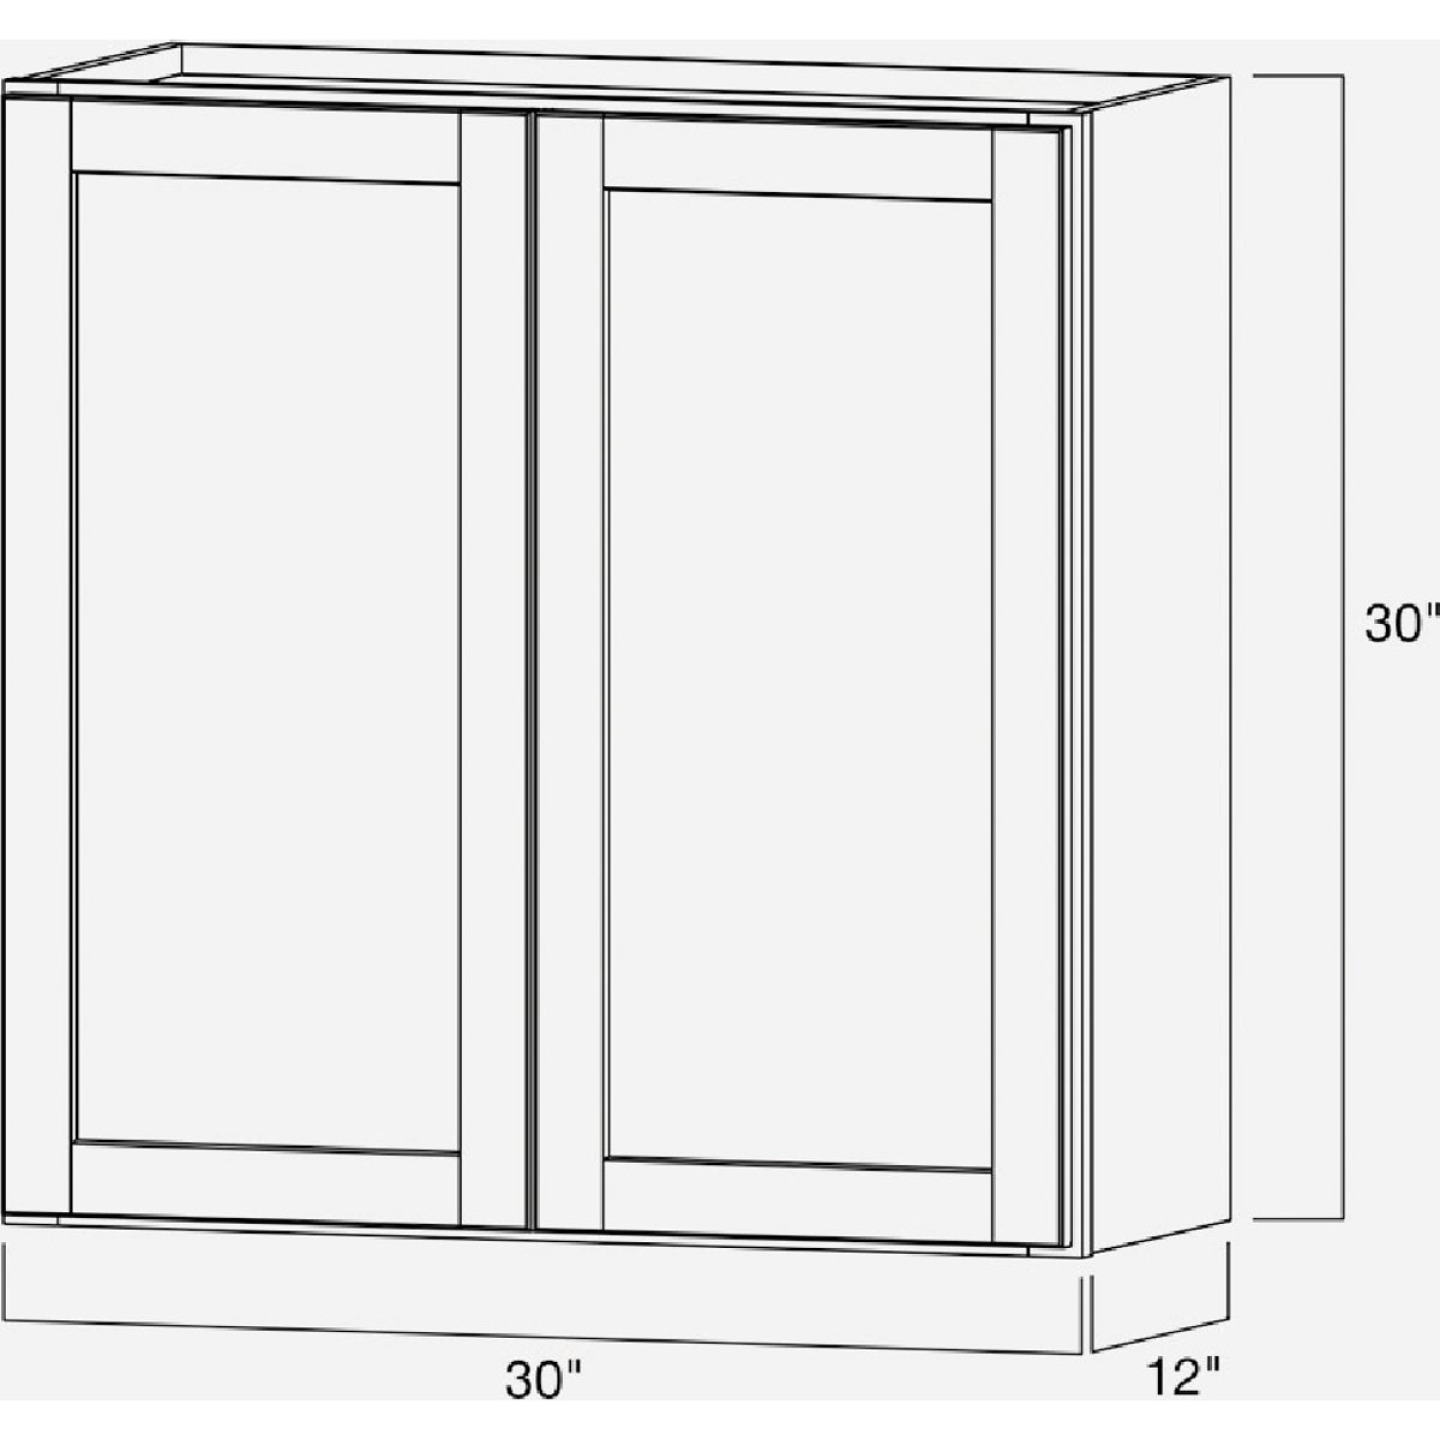 Continental Cabinets Andover Shaker 30 In. W x 30 In. H x 12 In. D White Thermofoil Wall Kitchen Cabinet Image 6